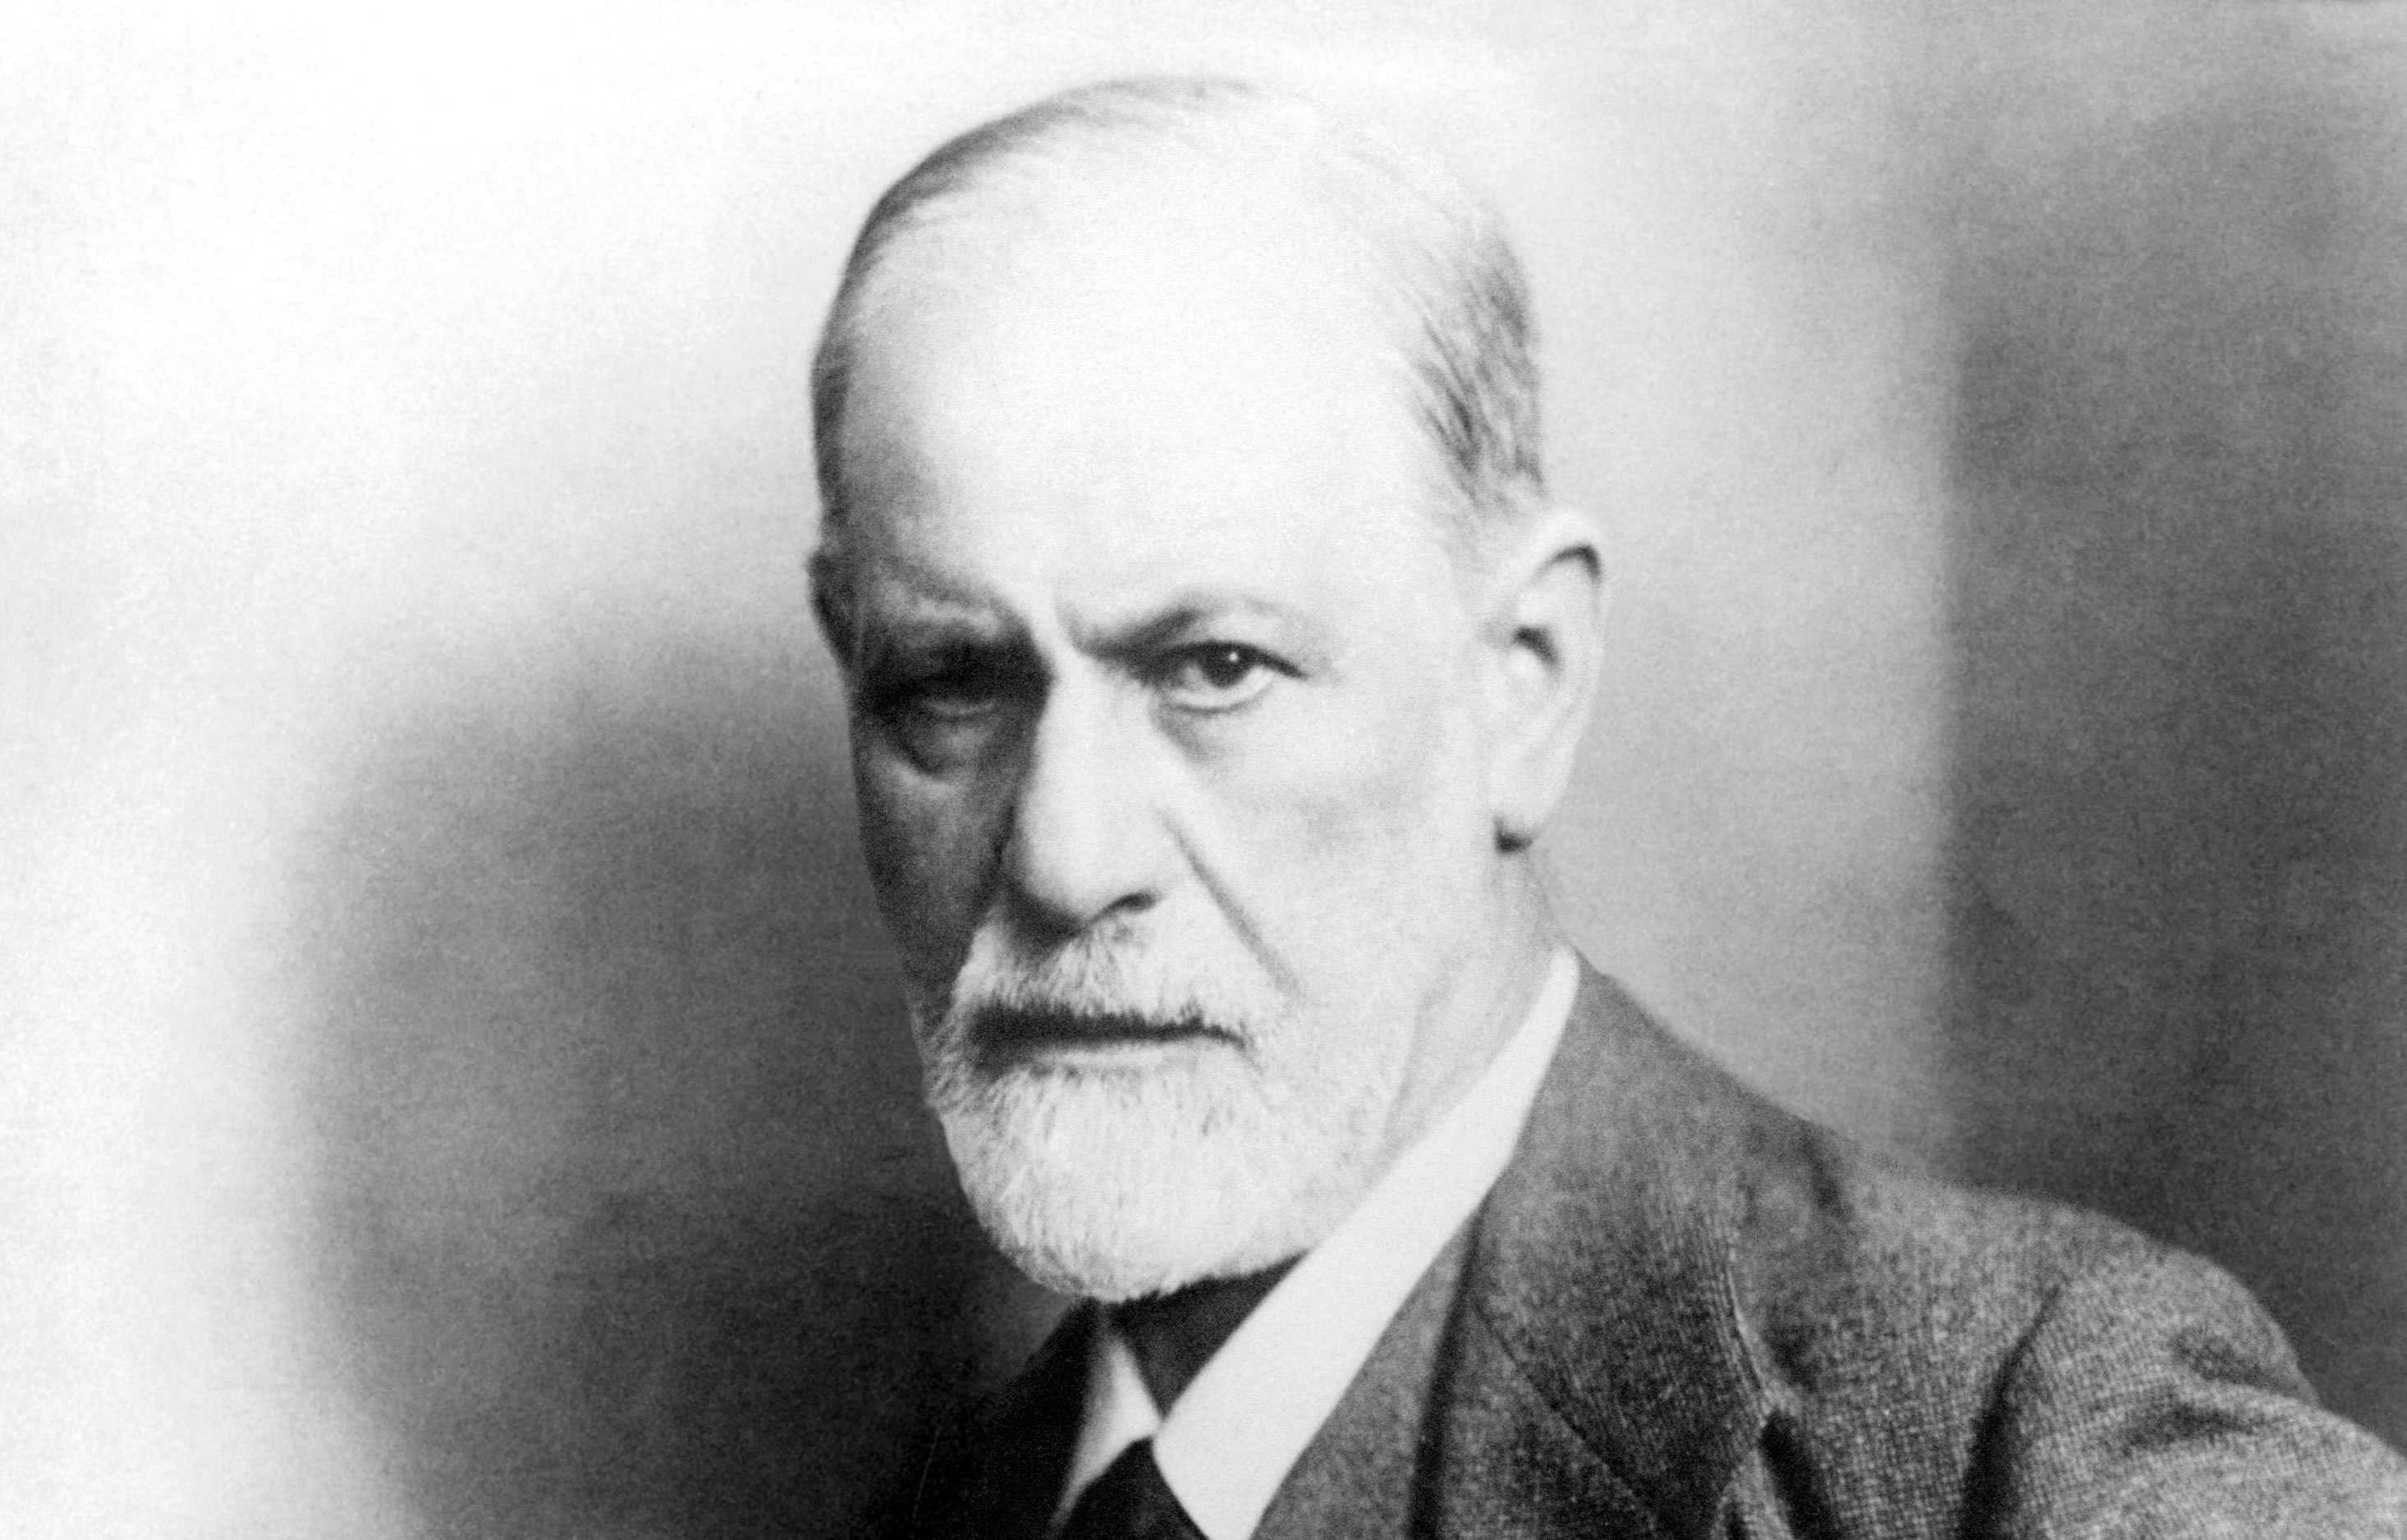 953169 Sigmund Freud Wallpapers Celebrities Backgrounds 2932x1876